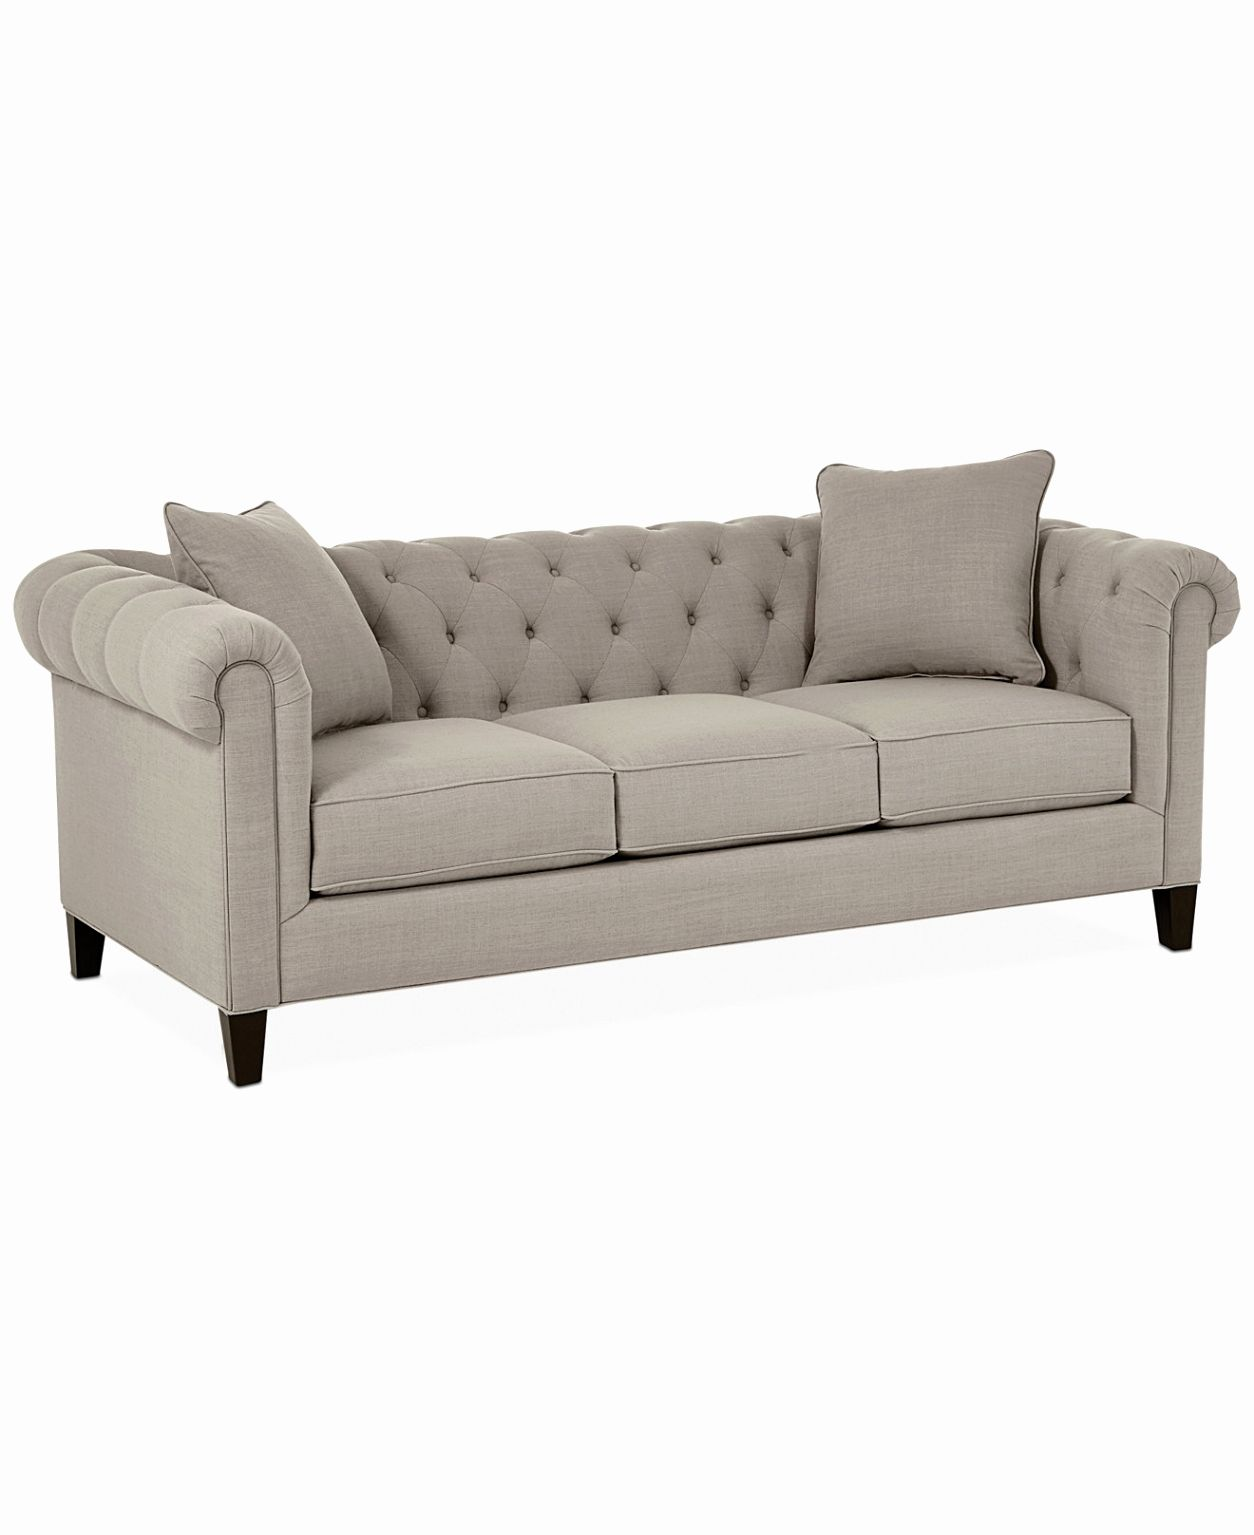 Unique Macys Sofa Sleeper Pics Macys Sofa Sleeper Beautiful Macys Sofa  Sleeper Lovely Sofas Macys Sofa